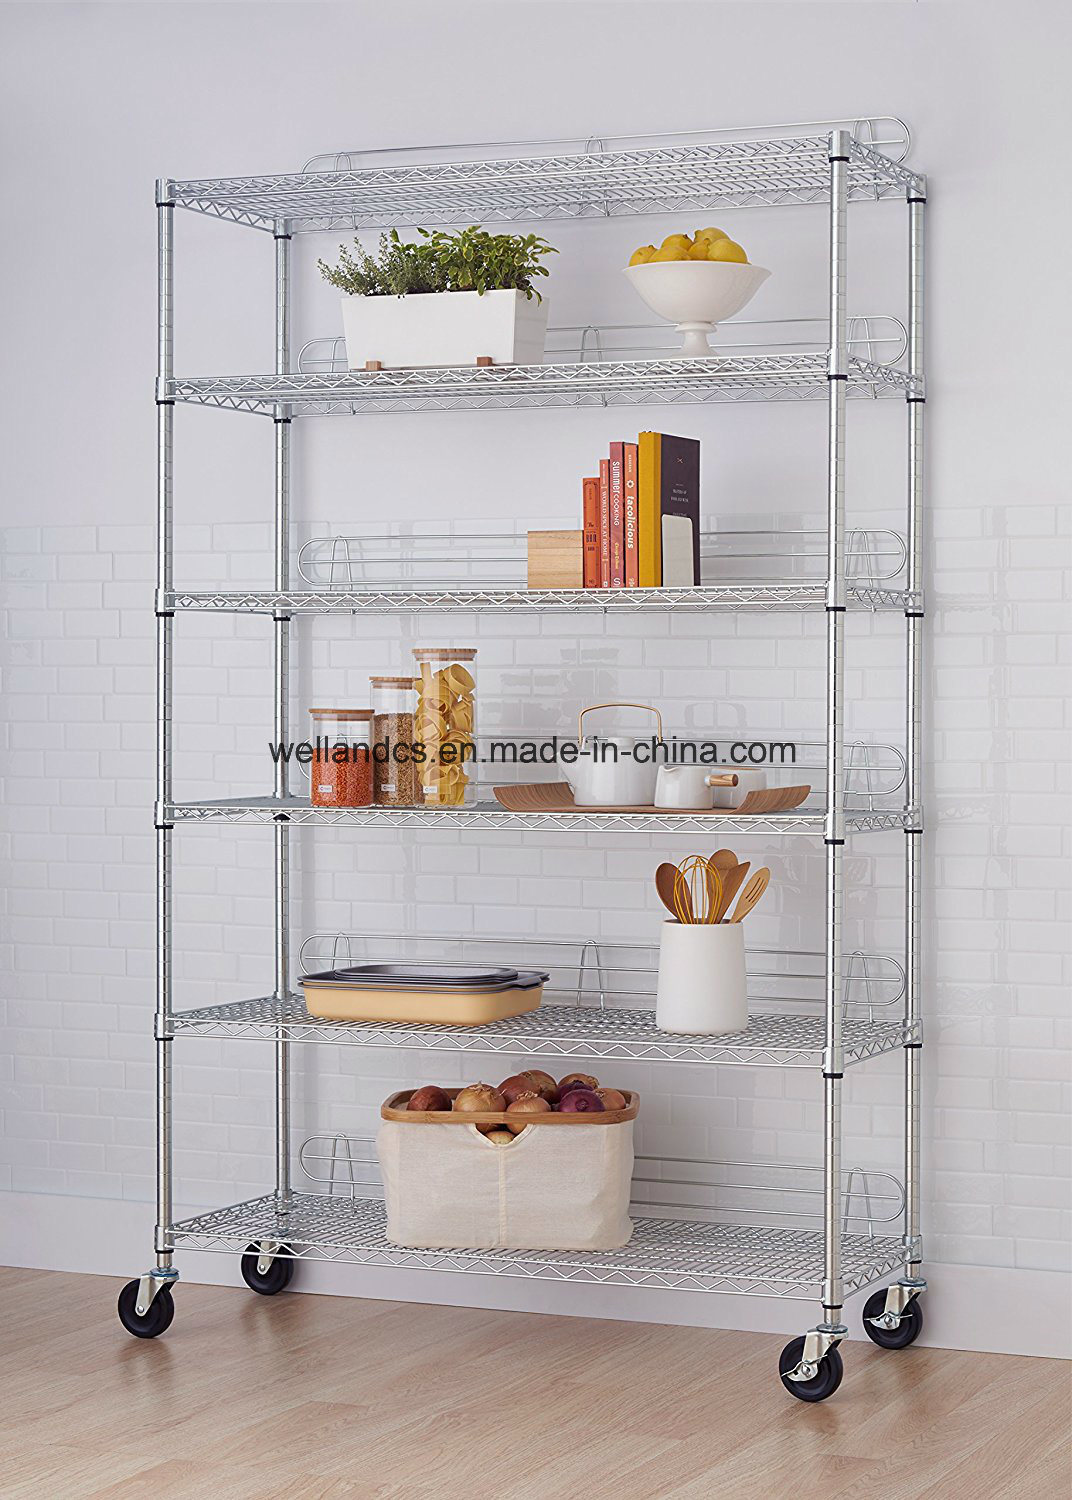 china 800lbs commercial kitchen storage shelf chrome metal wire rh wellandcs en made in china com